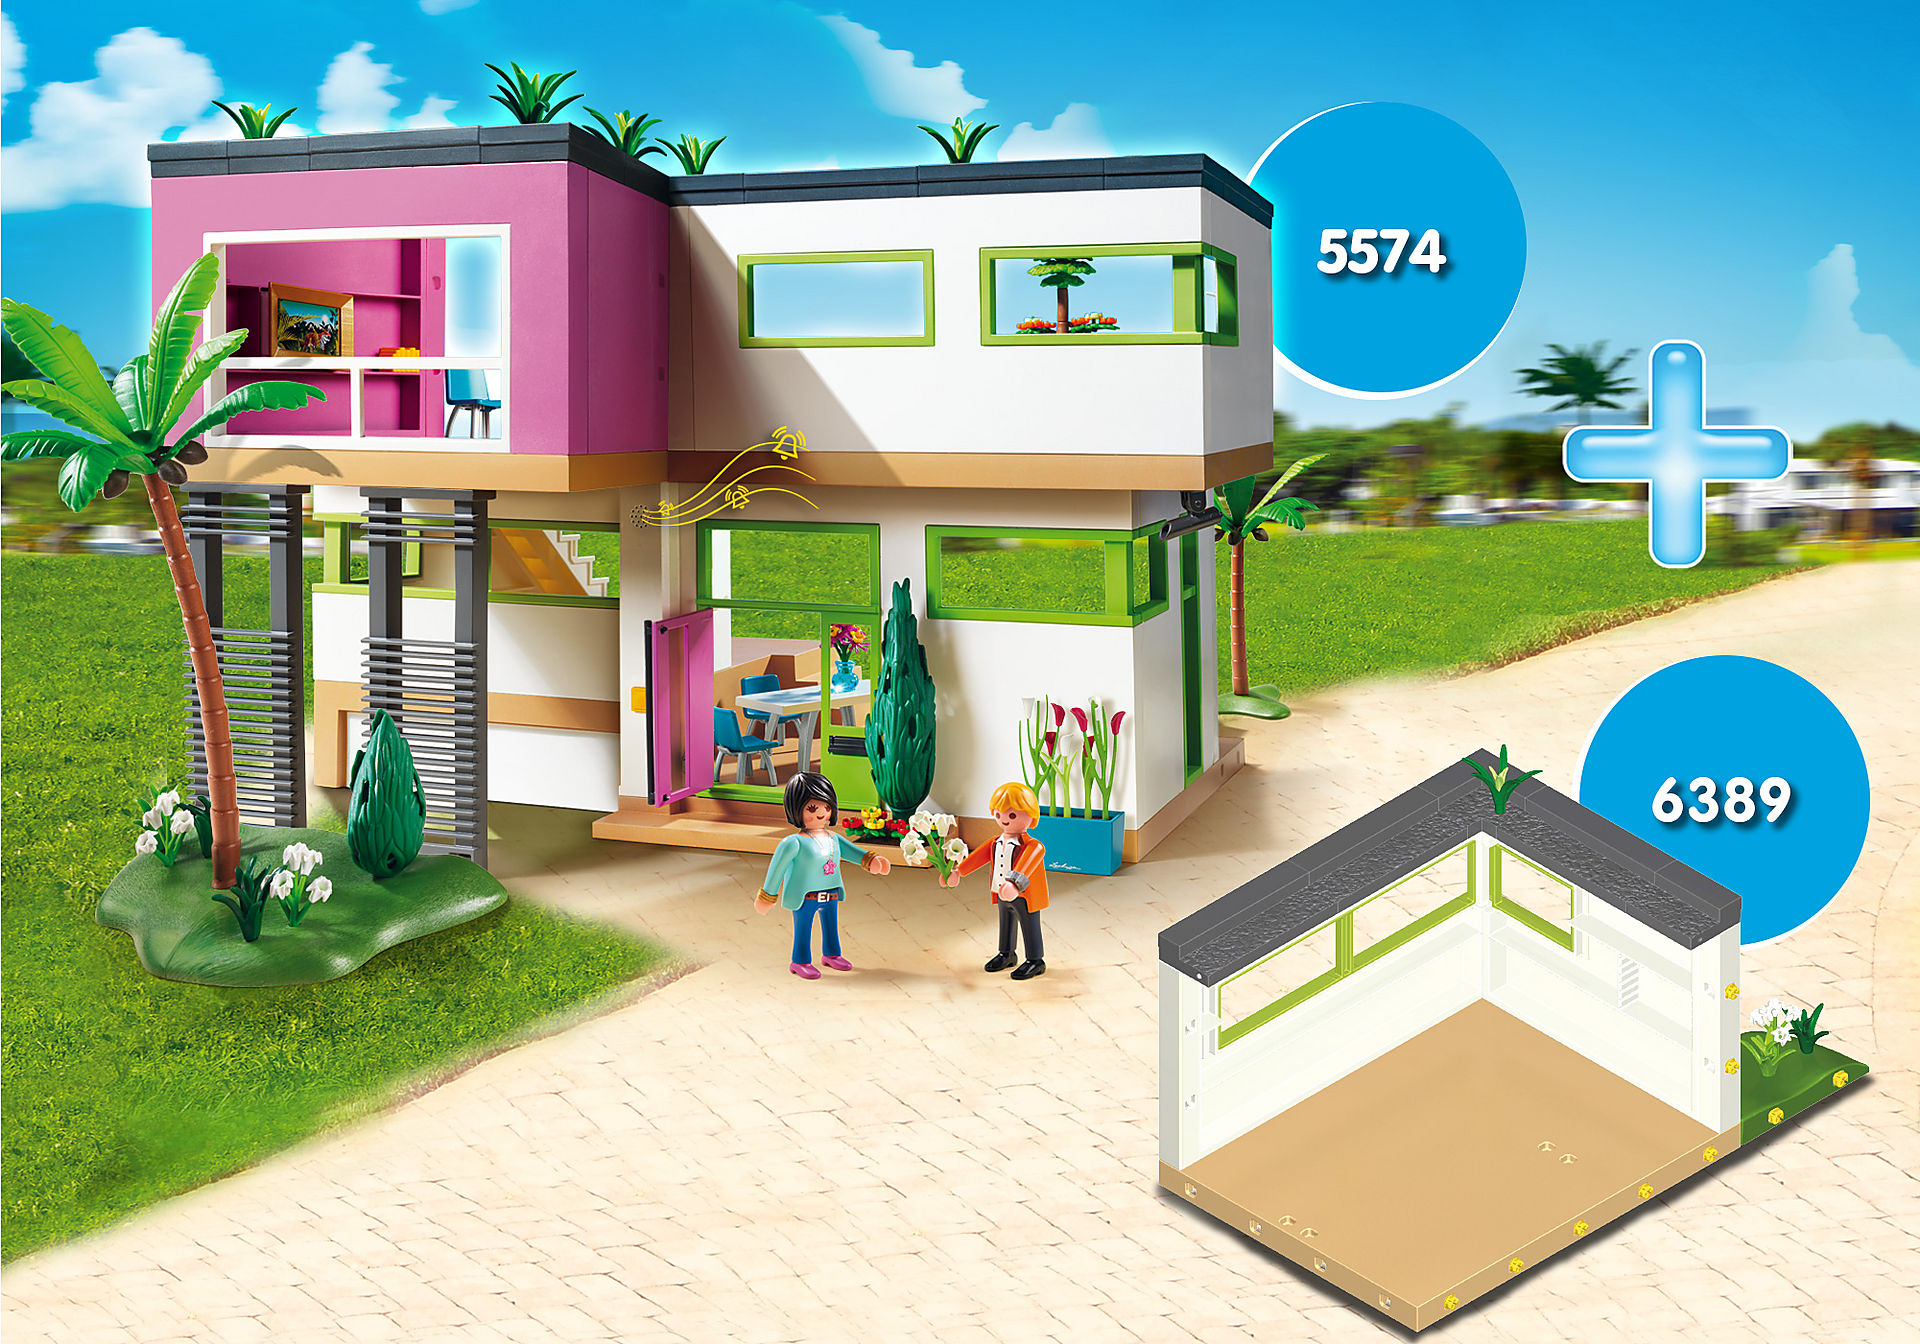 http://media.playmobil.com/i/playmobil/PM1905K_product_detail/Bundle Luxusvilla